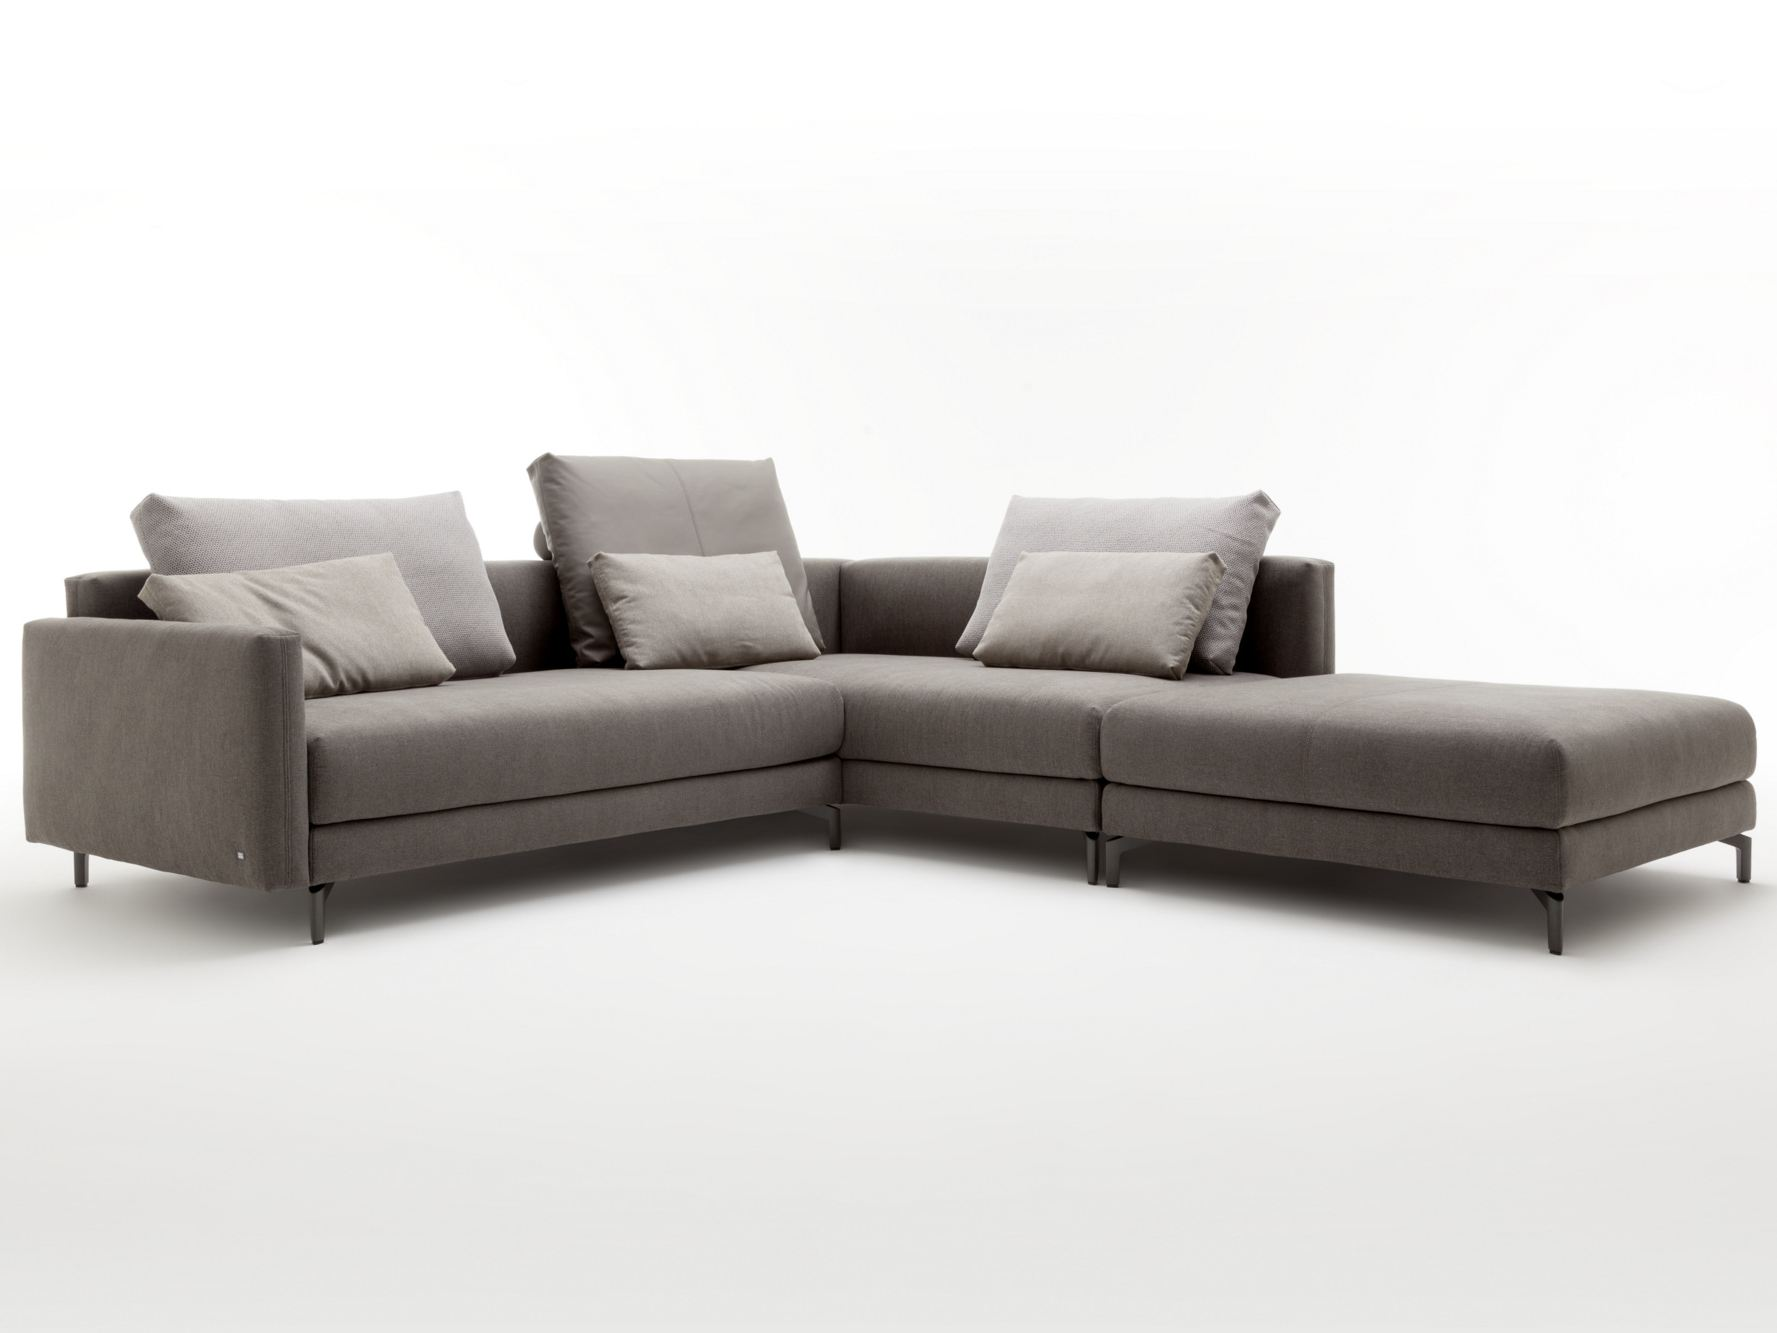 Benz Corner Sofa Nuvola Sectional Sofa By Rolf Benz